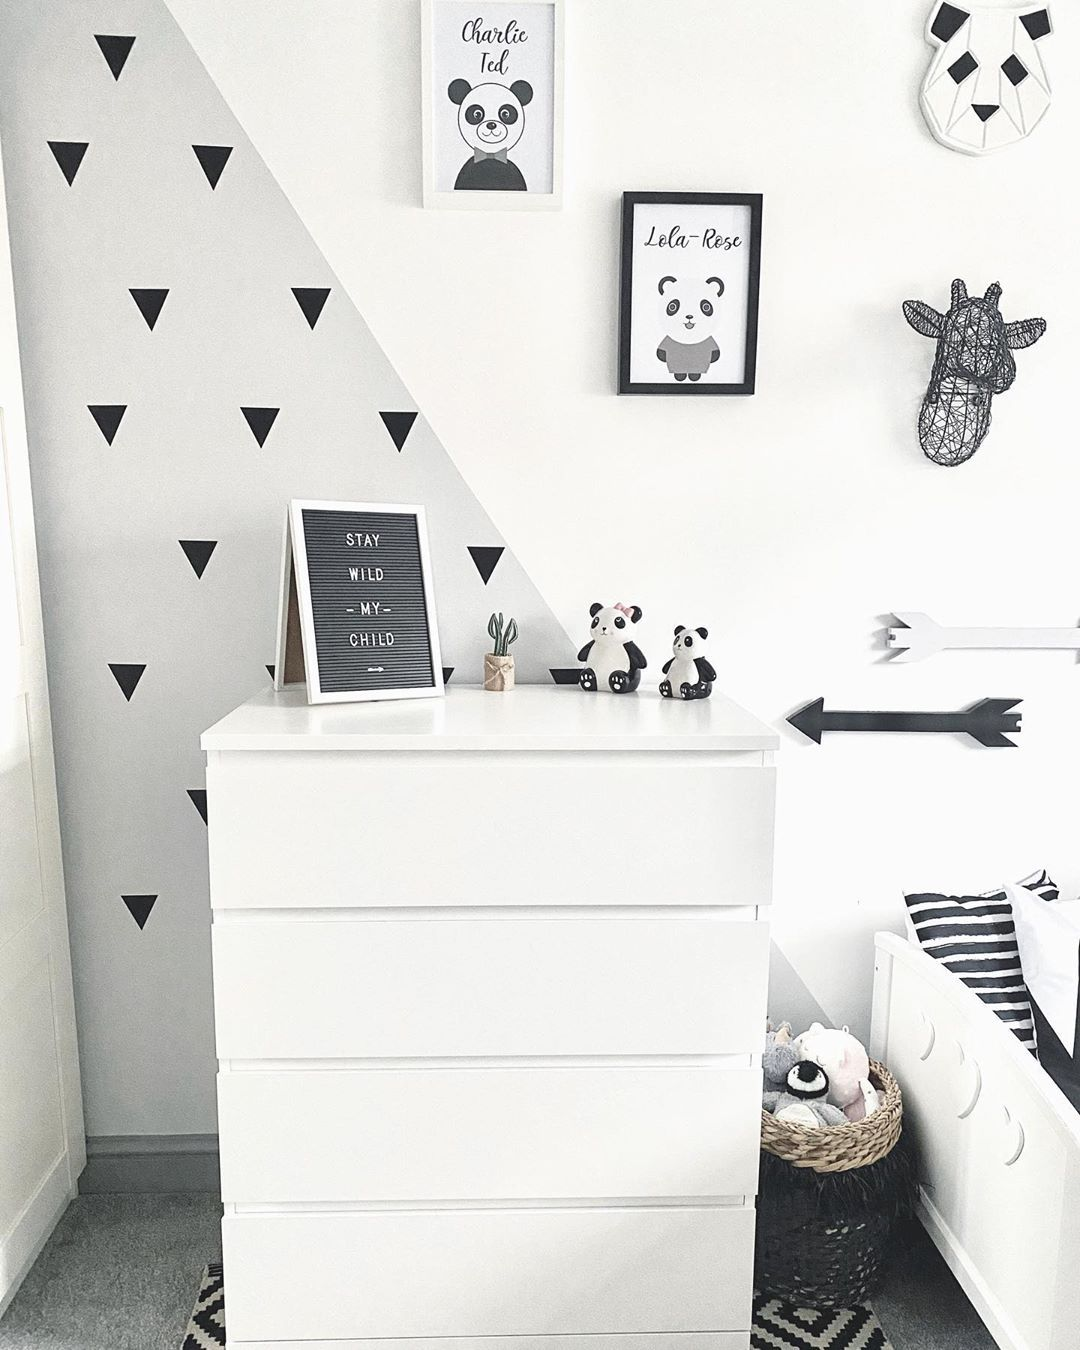 60 Triangle Wall Stickers - 4 Sizes